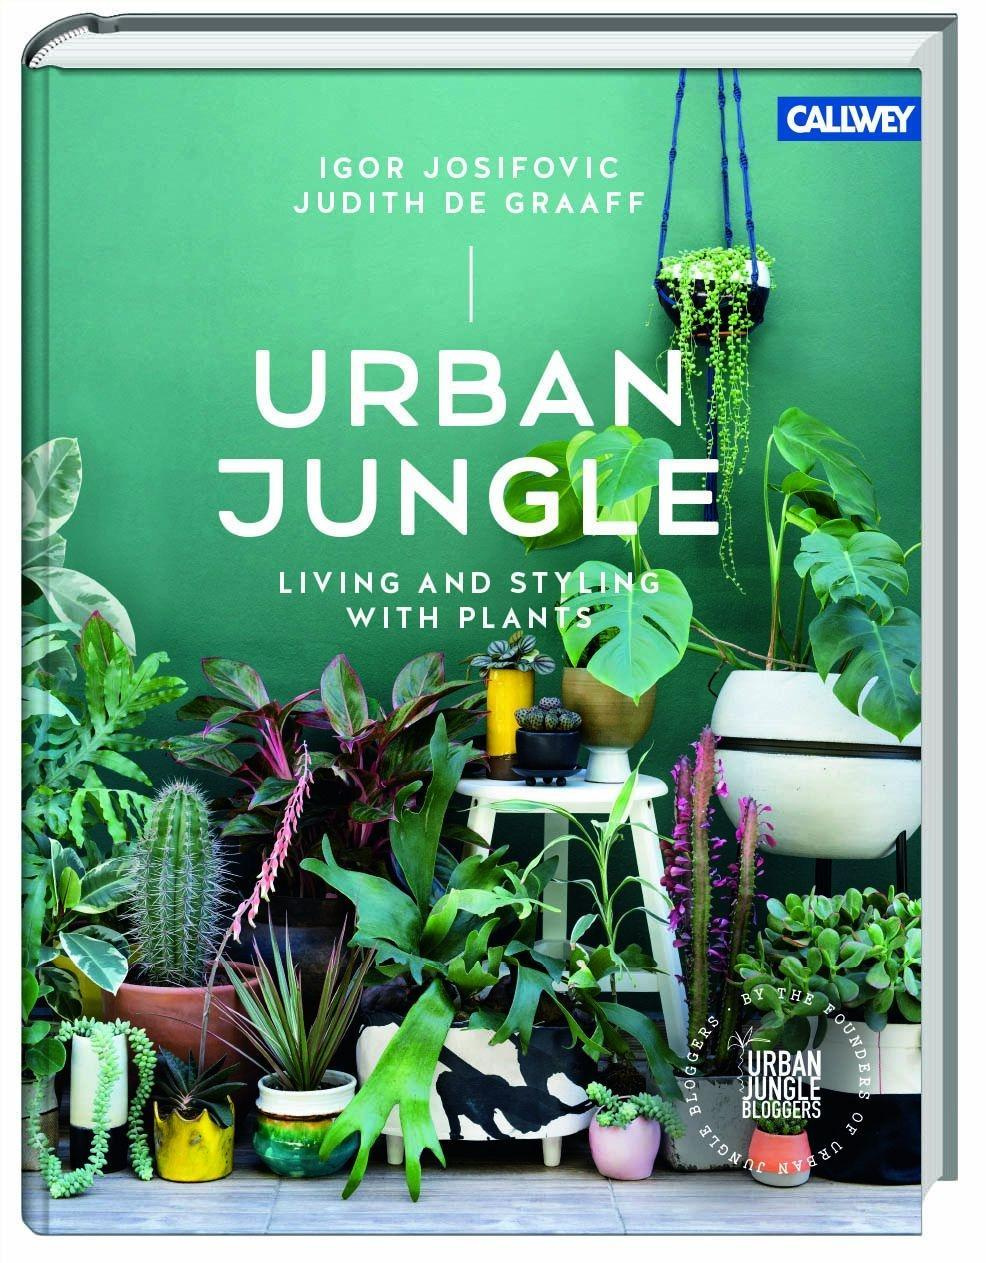 Urban Jungle: Living and Styling with Plants by Igor Josifovic, ISBN: 9783766722447